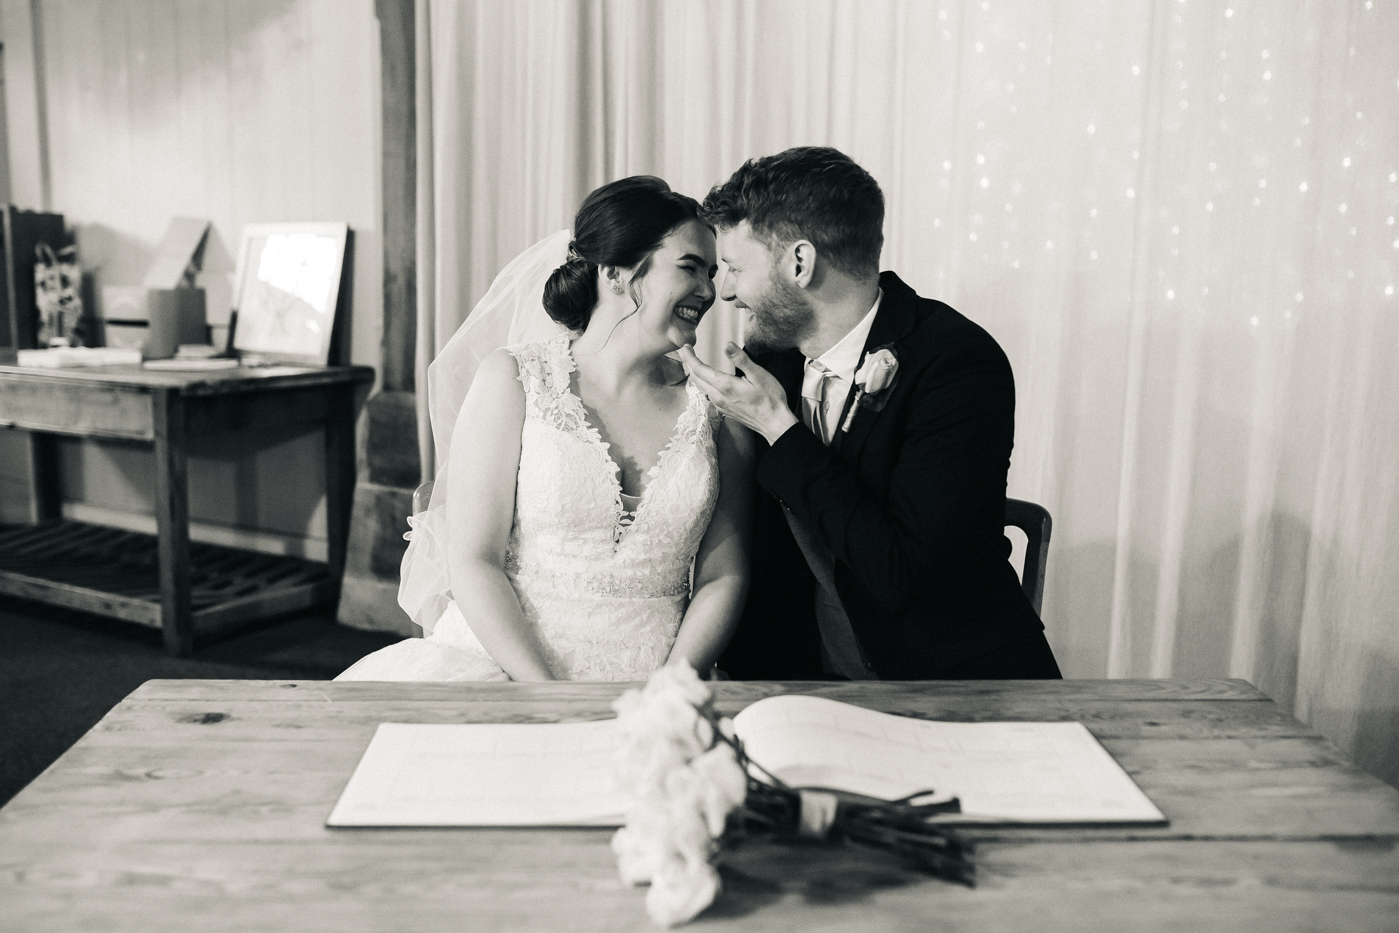 the bride and groom laugh during the register signing. spring barn wedding at east riddlesden hall keighley west yorkshire wedding photographer